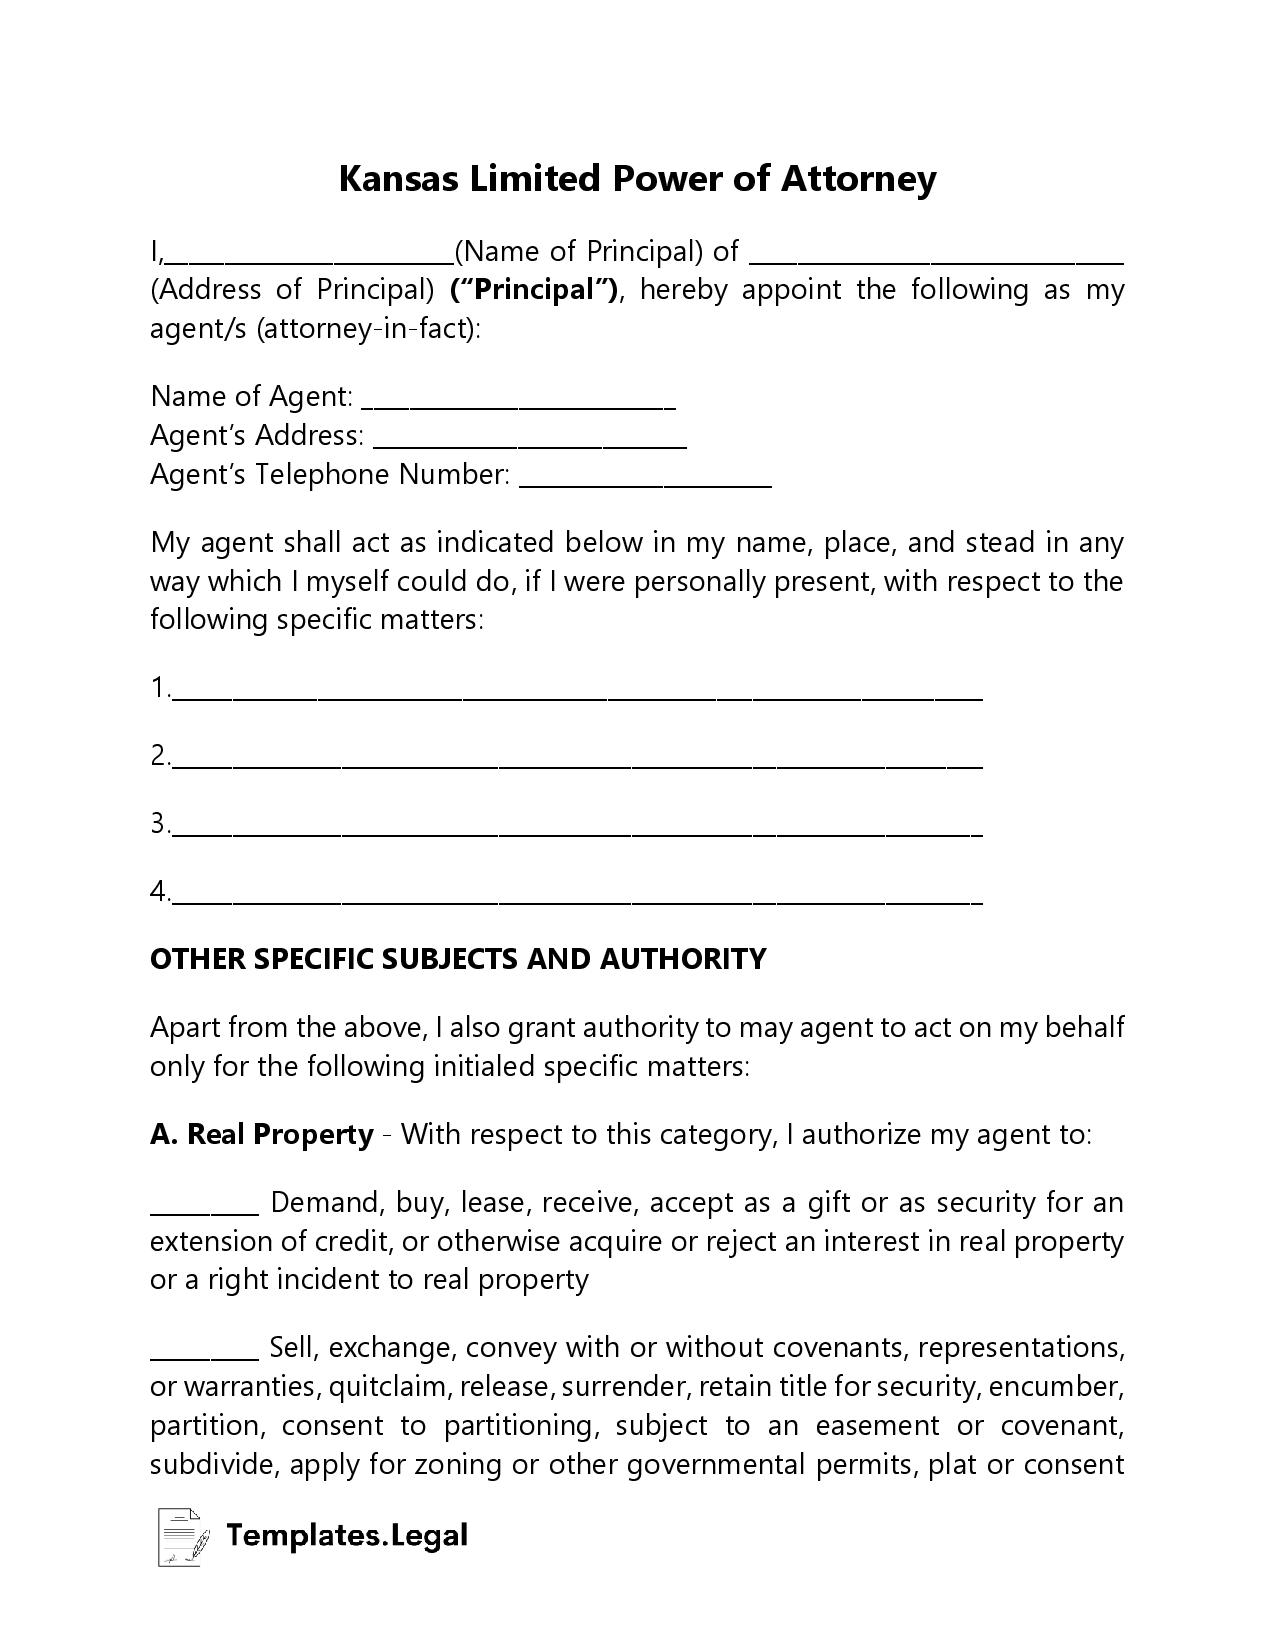 Kansas Limited Power of Attorney - Templates.Legal